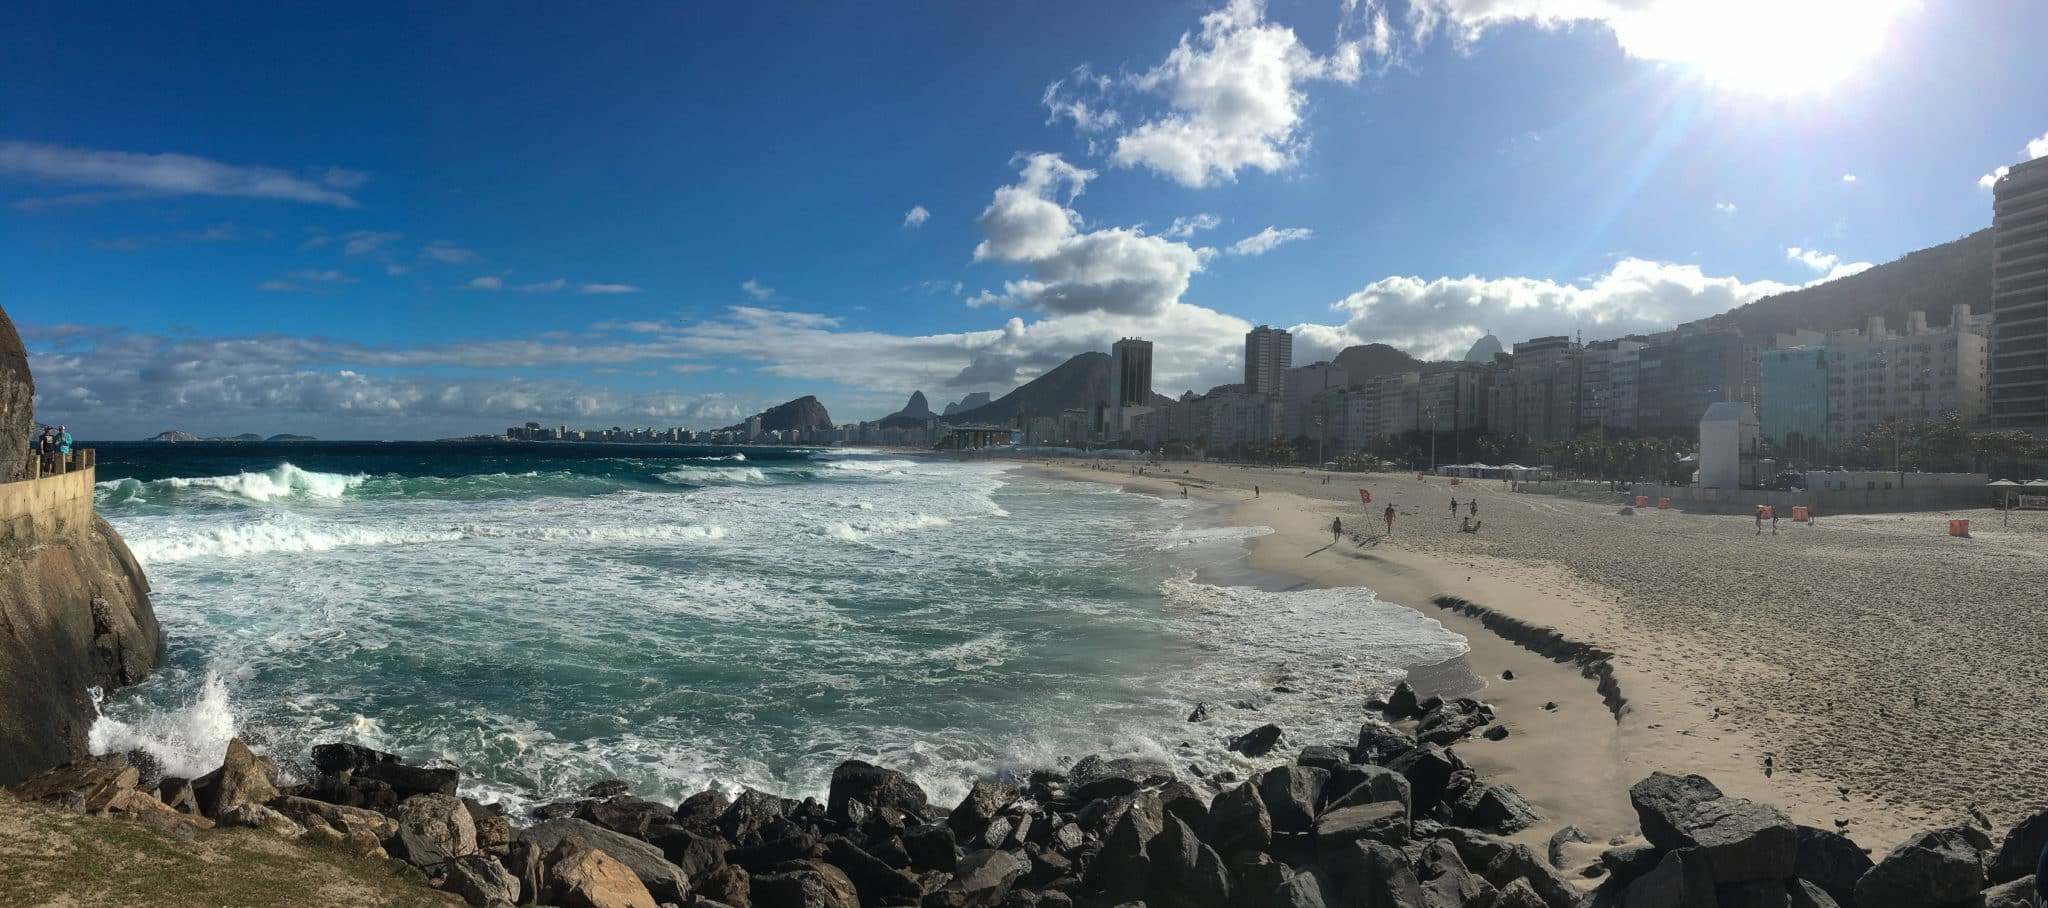 View of Copacabana Beach from the base of Sugarloaf Mountain.